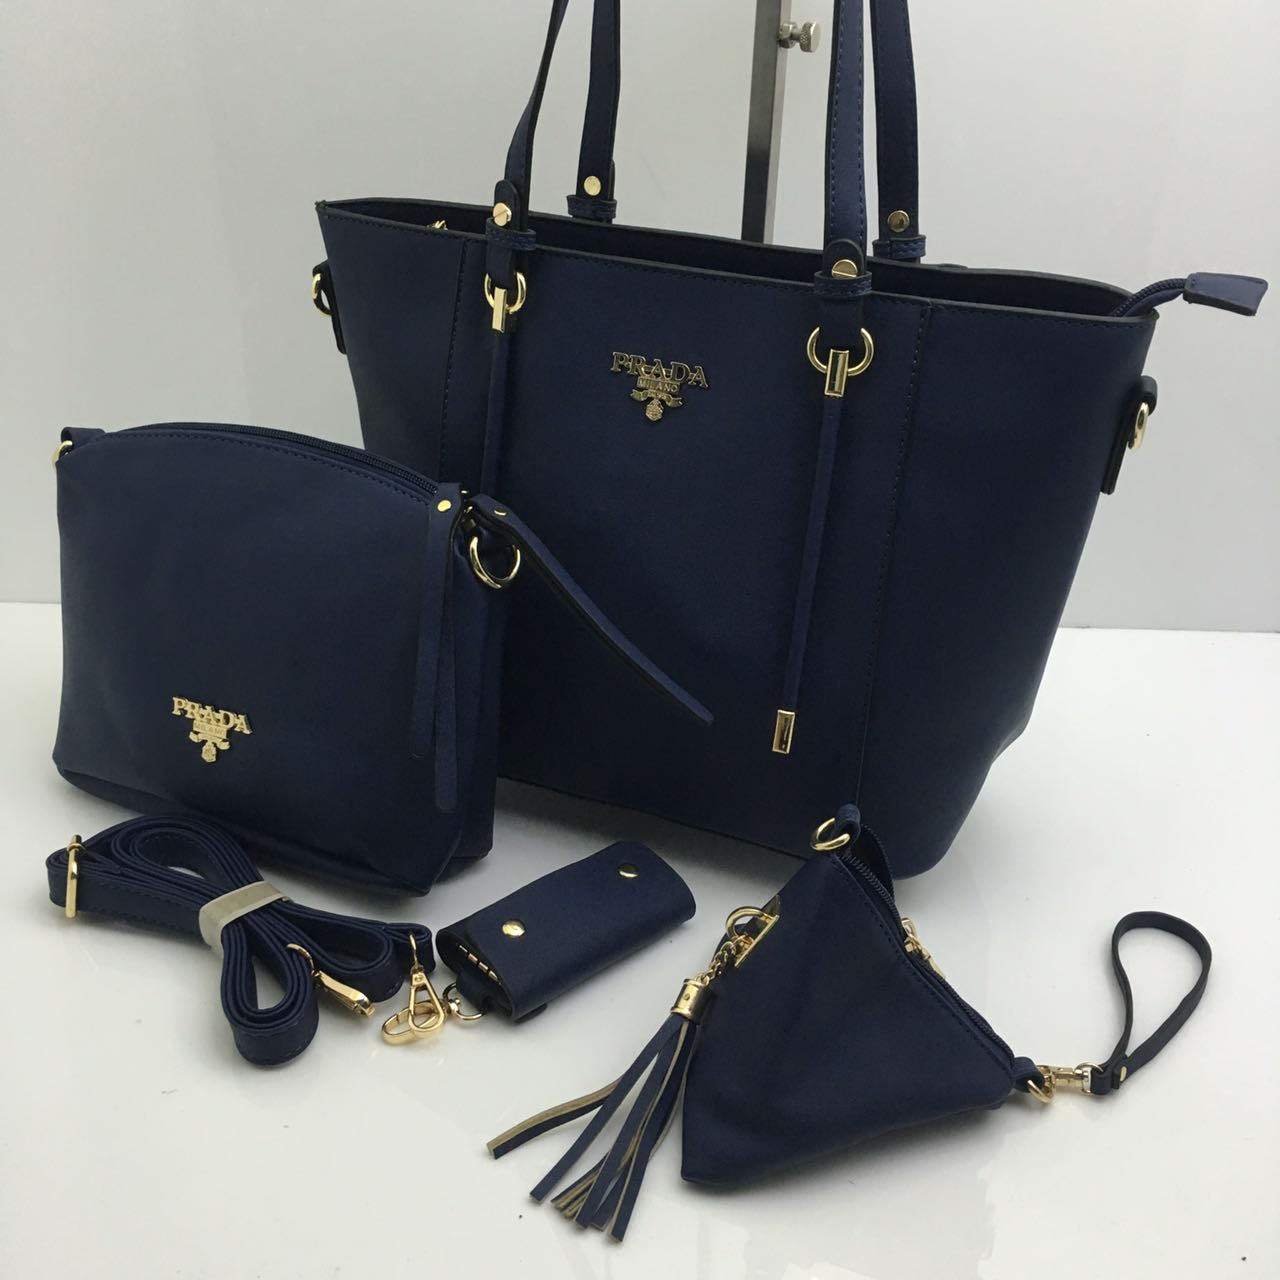 6b32a2a2b807 ... switzerland branded products prada bags 4 set combo 5 colours 8c8b3  23b01 ...